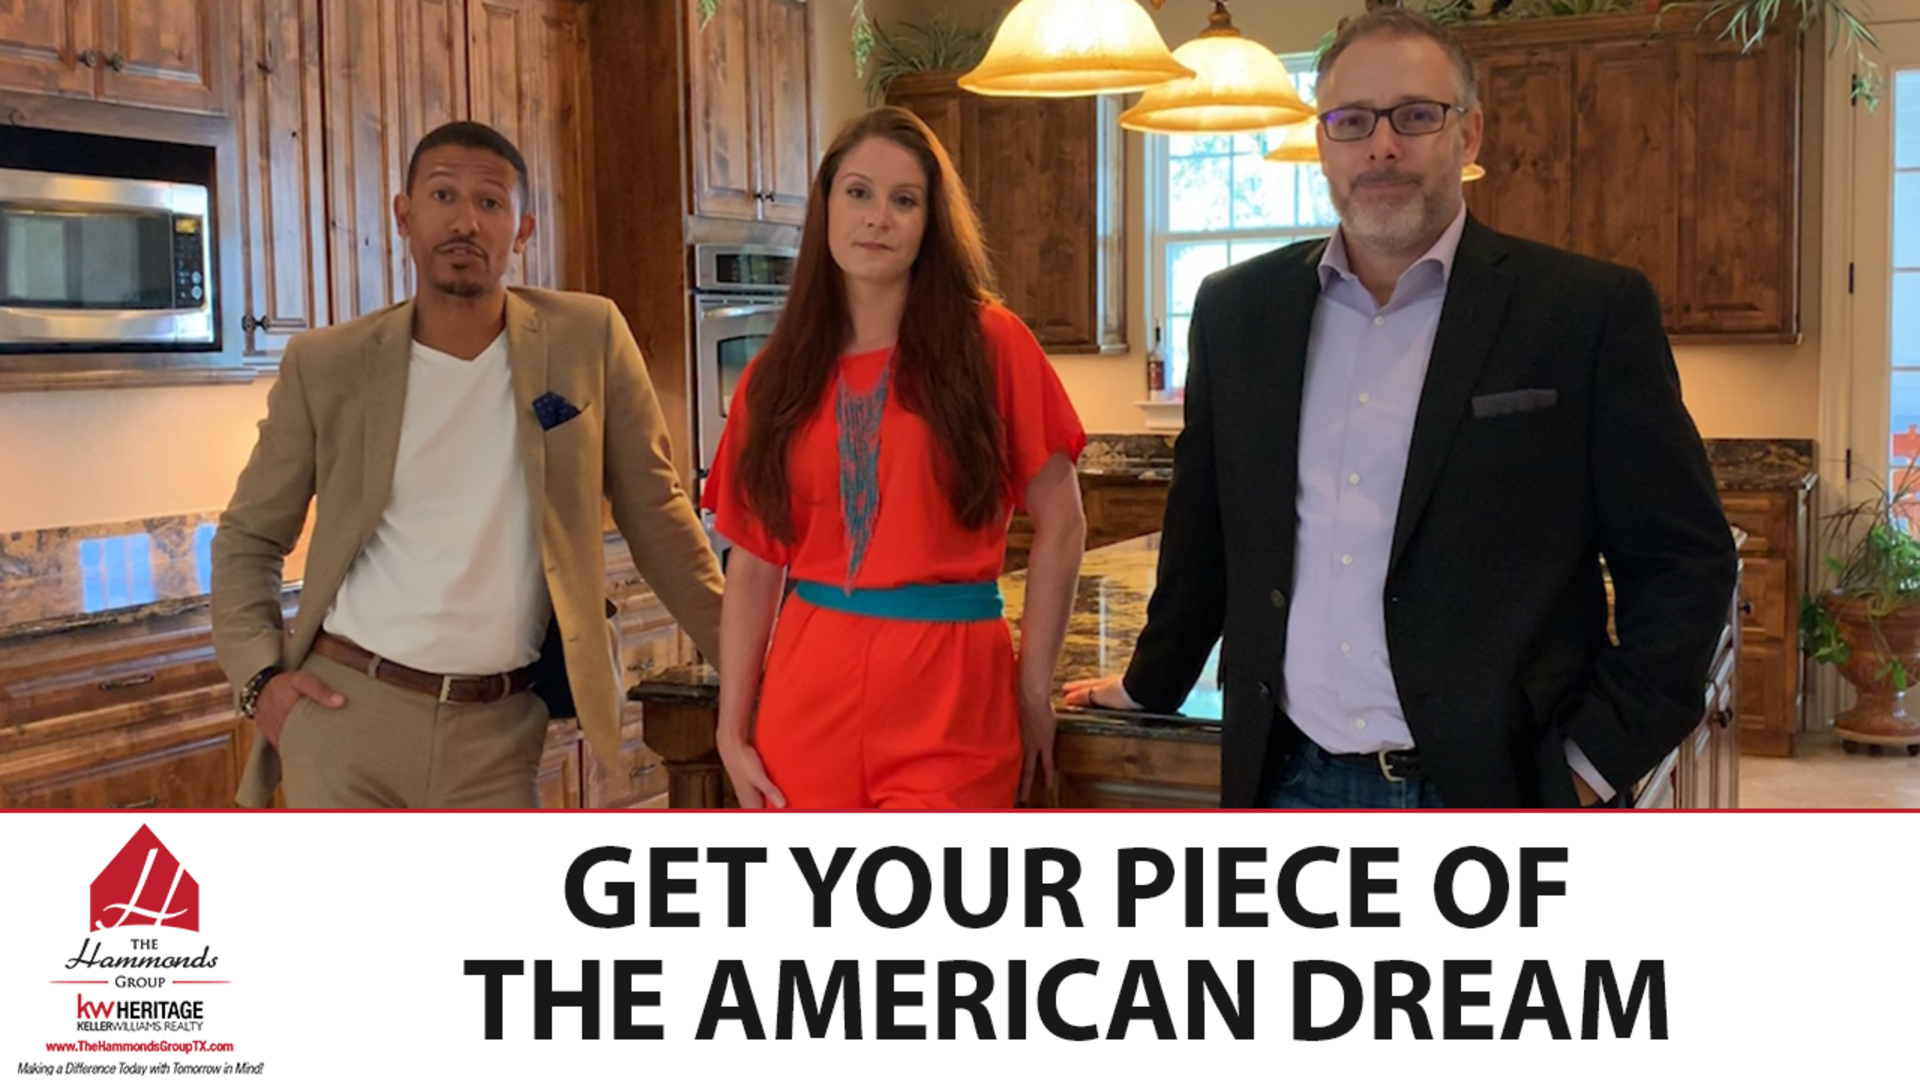 Everyone Deserves a Piece of the American Dream, Including You